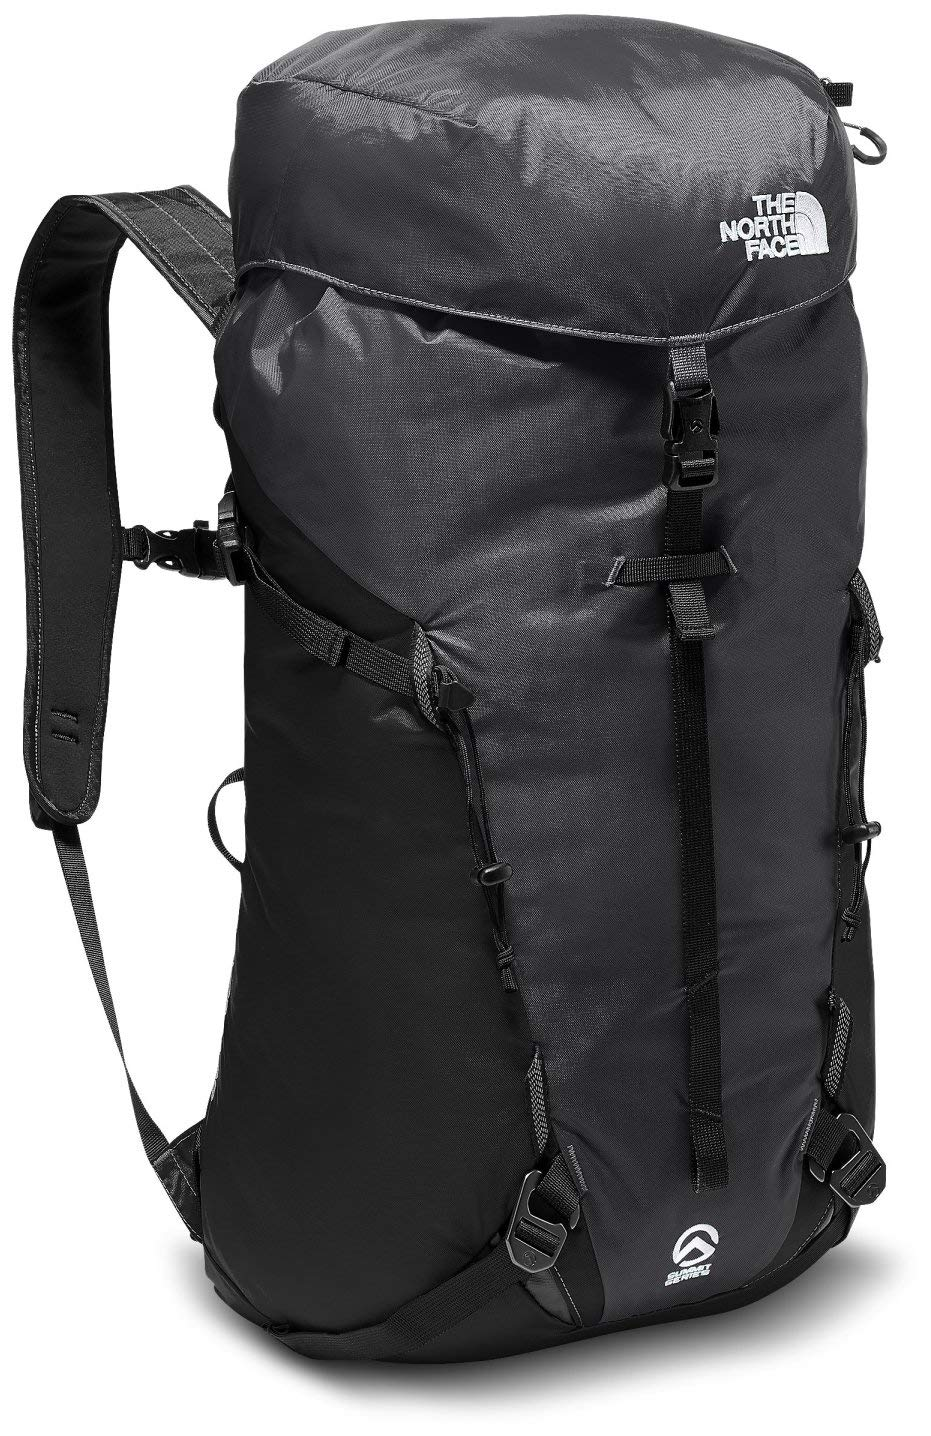 The North Face Verto 27 Backpack - TNF Black/Asphalt Grey by The North Face